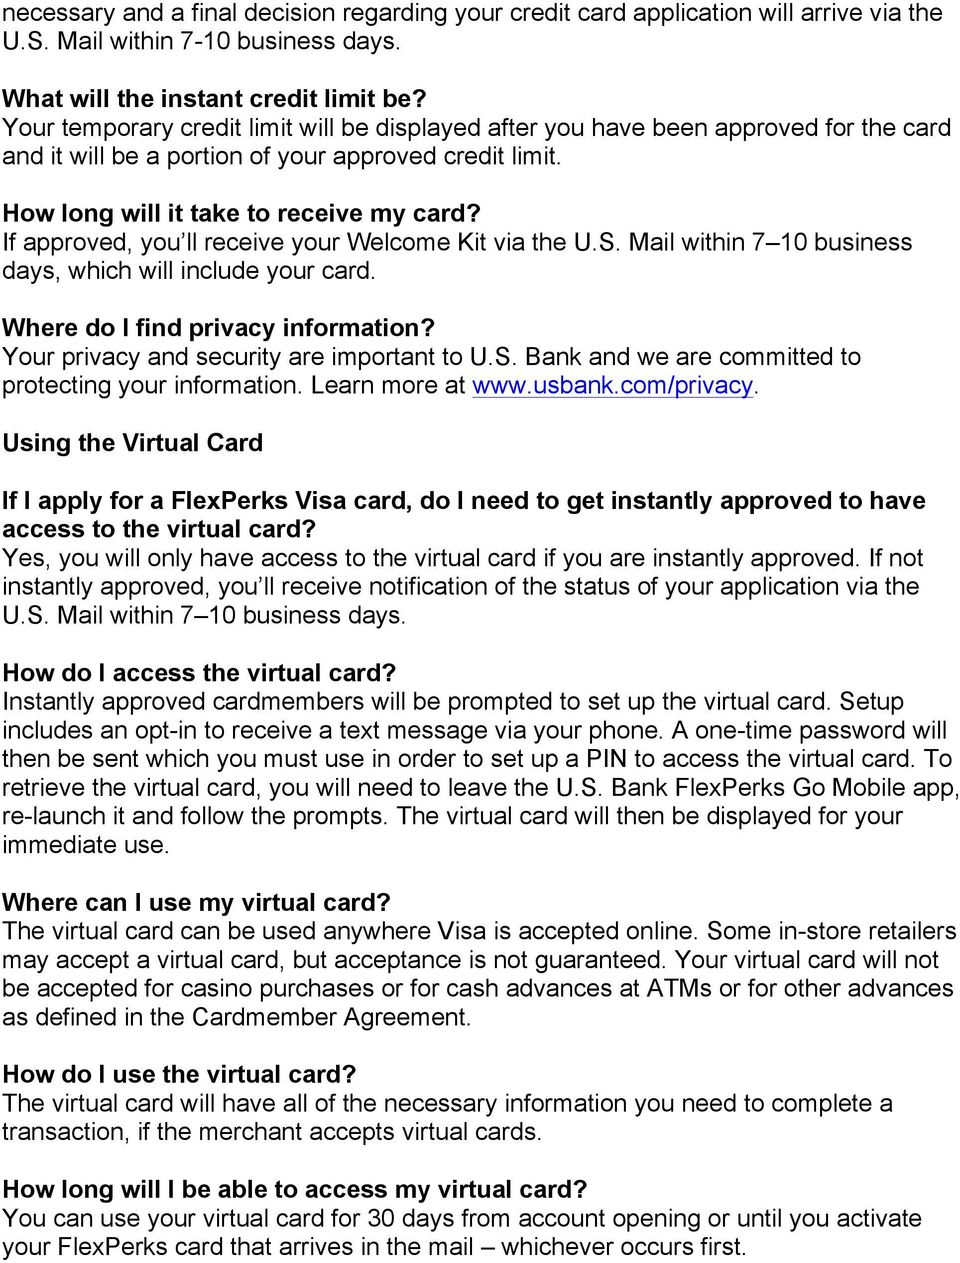 If approved, you ll receive your Welcome Kit via the U.S. Mail within 7 10 business days, which will include your card. Where do I find privacy information?